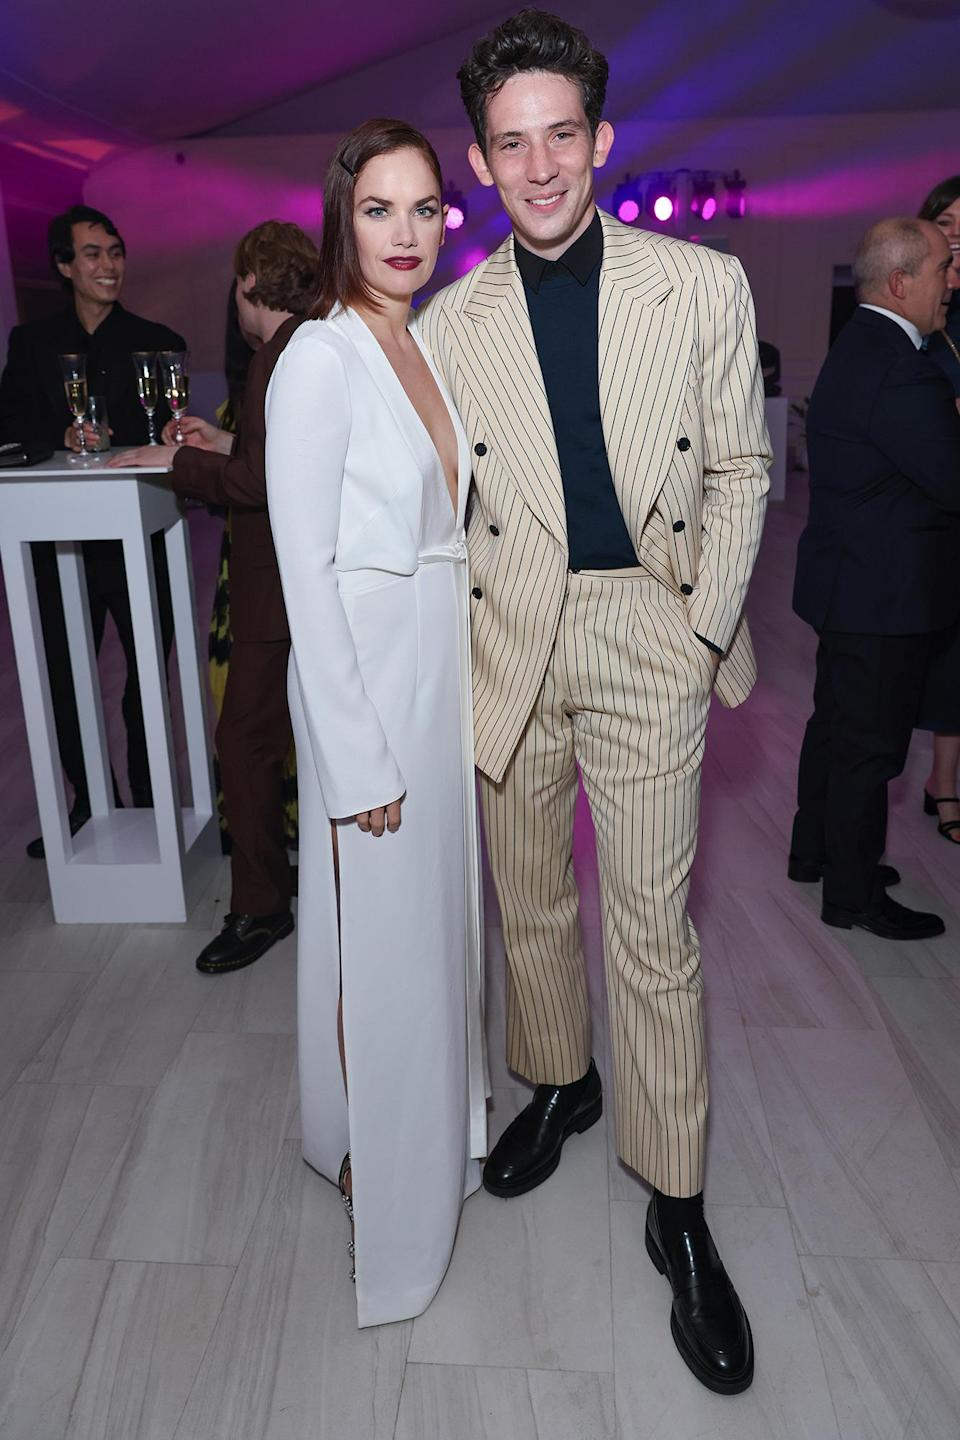 <p>Ruth Wilson and Josh O'Connor look glam at the star-studded Bulgari High Jewelry Gala on Oct. 12 at Kensington Palace in London. </p>